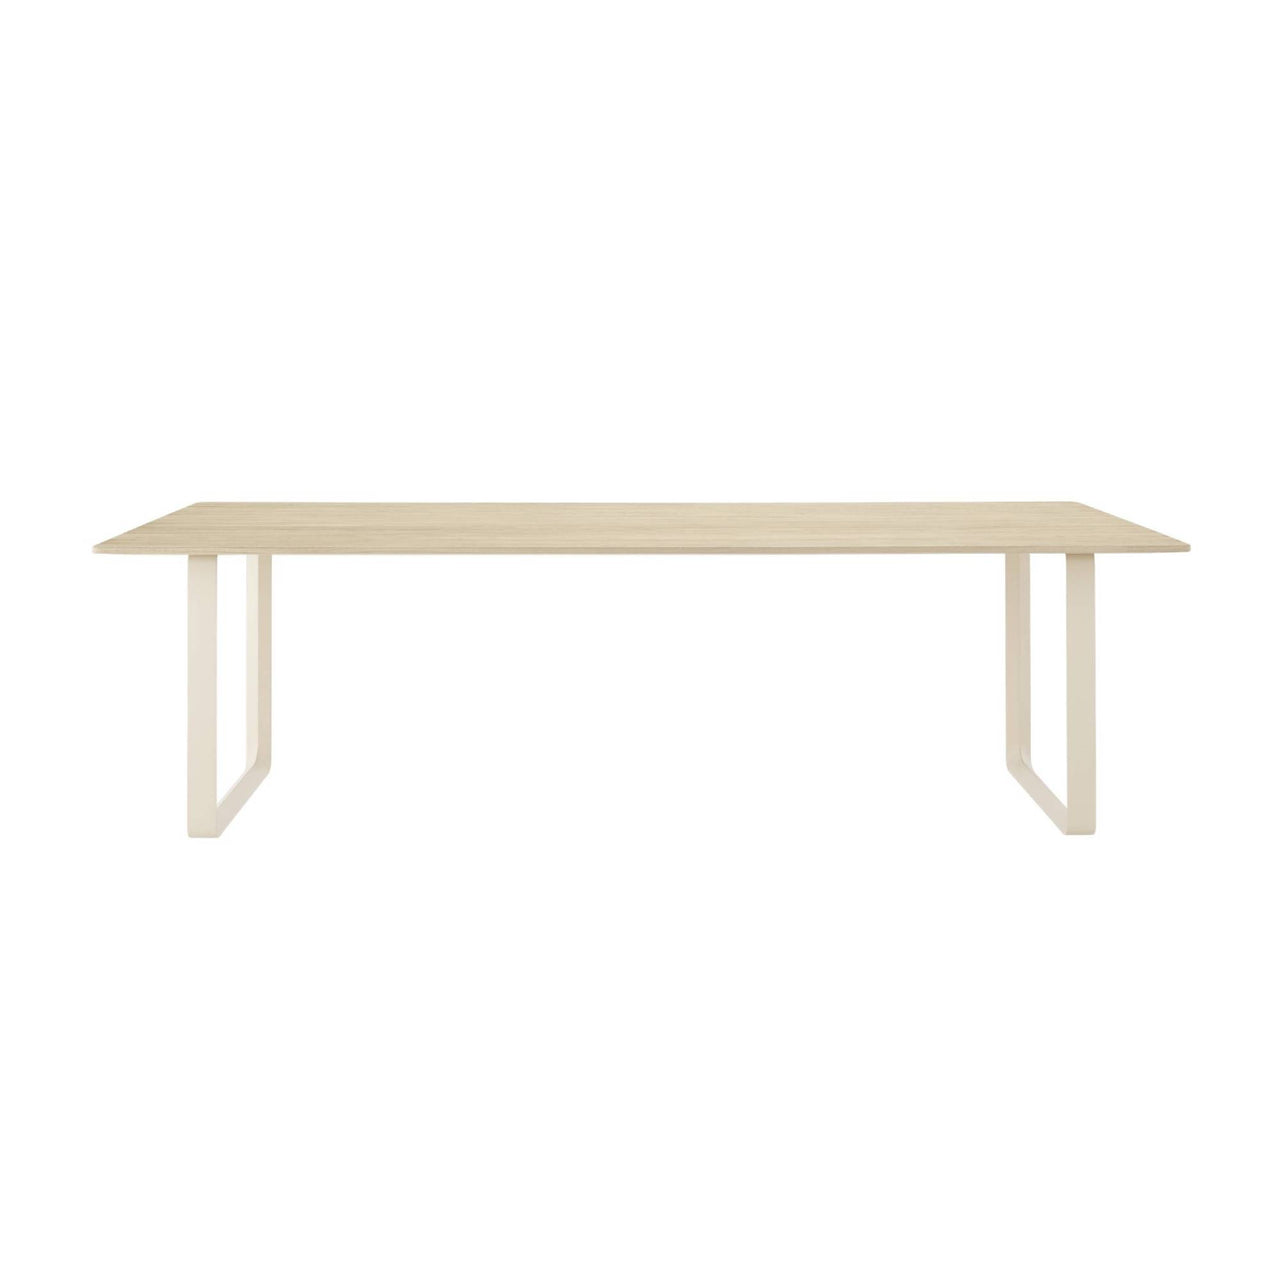 70/70 Table: Solid Oak + Extra Large + Sand